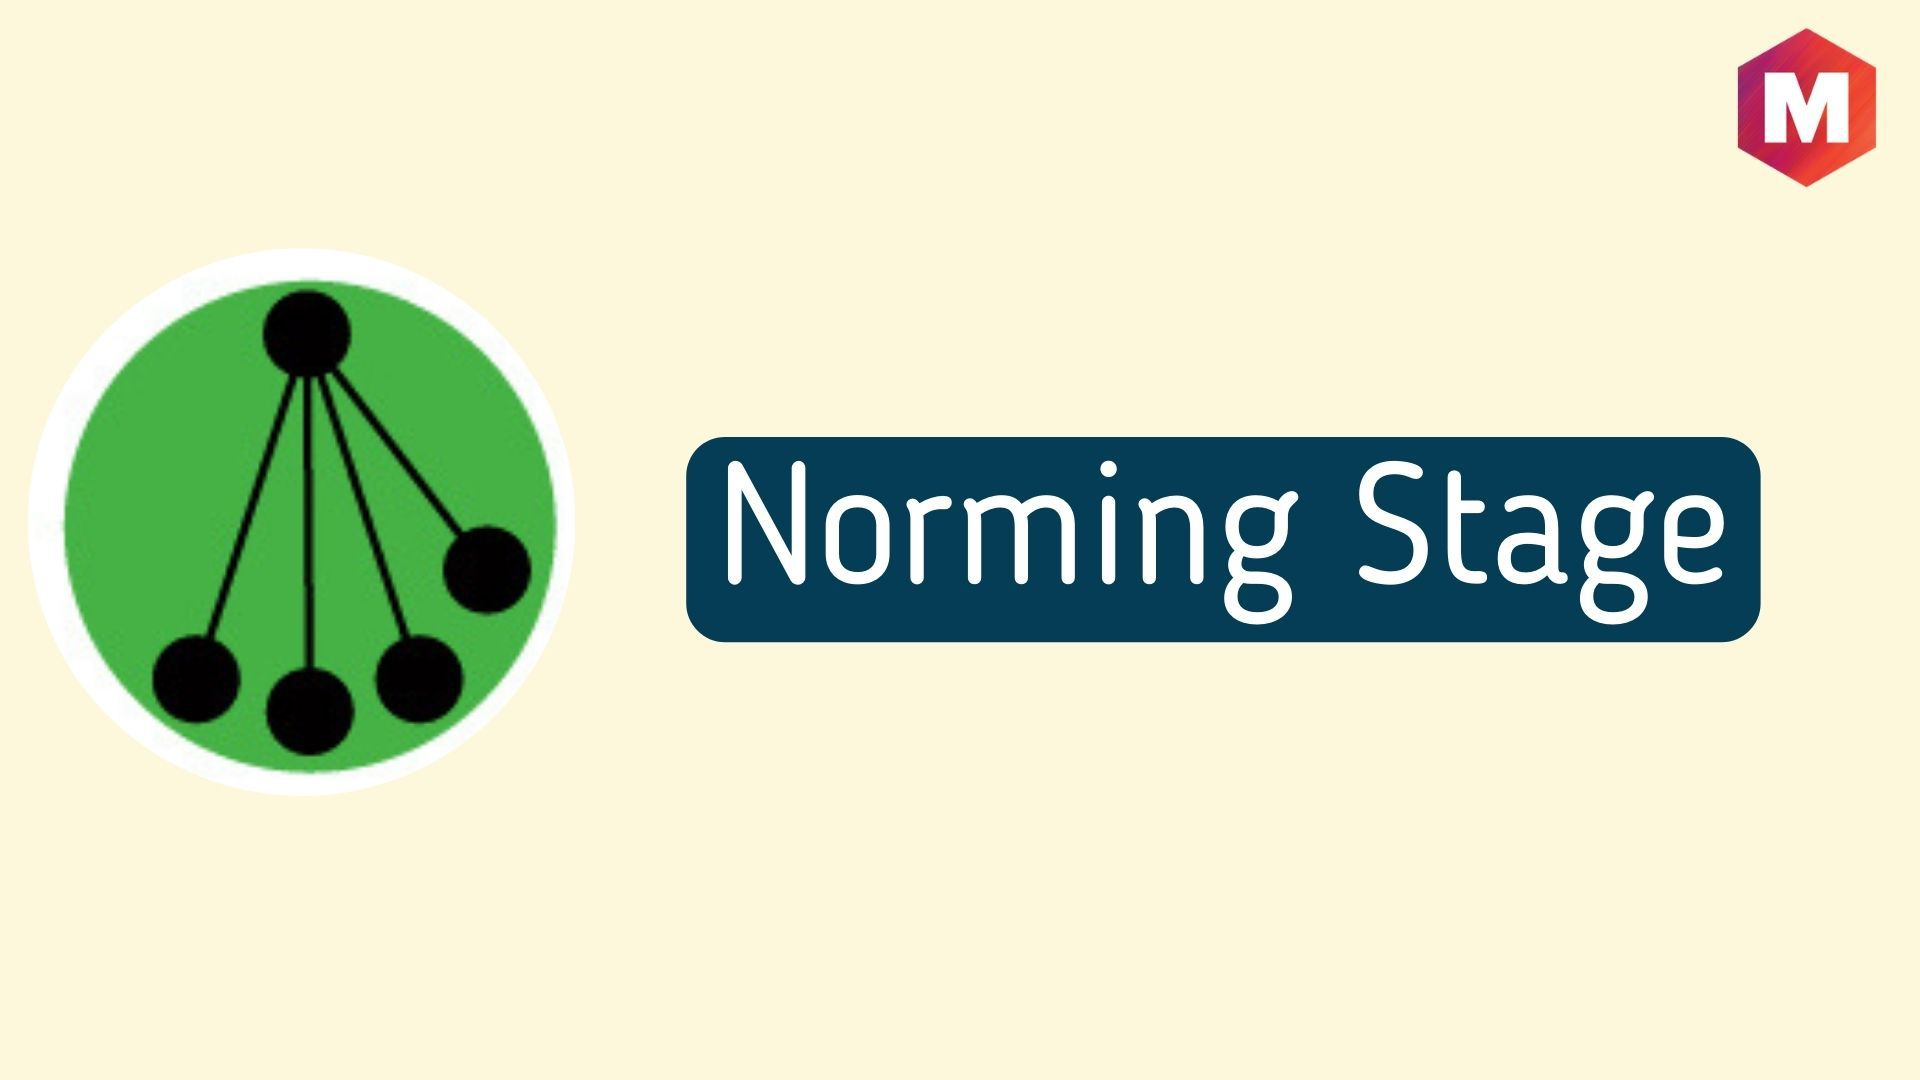 Norming Stage